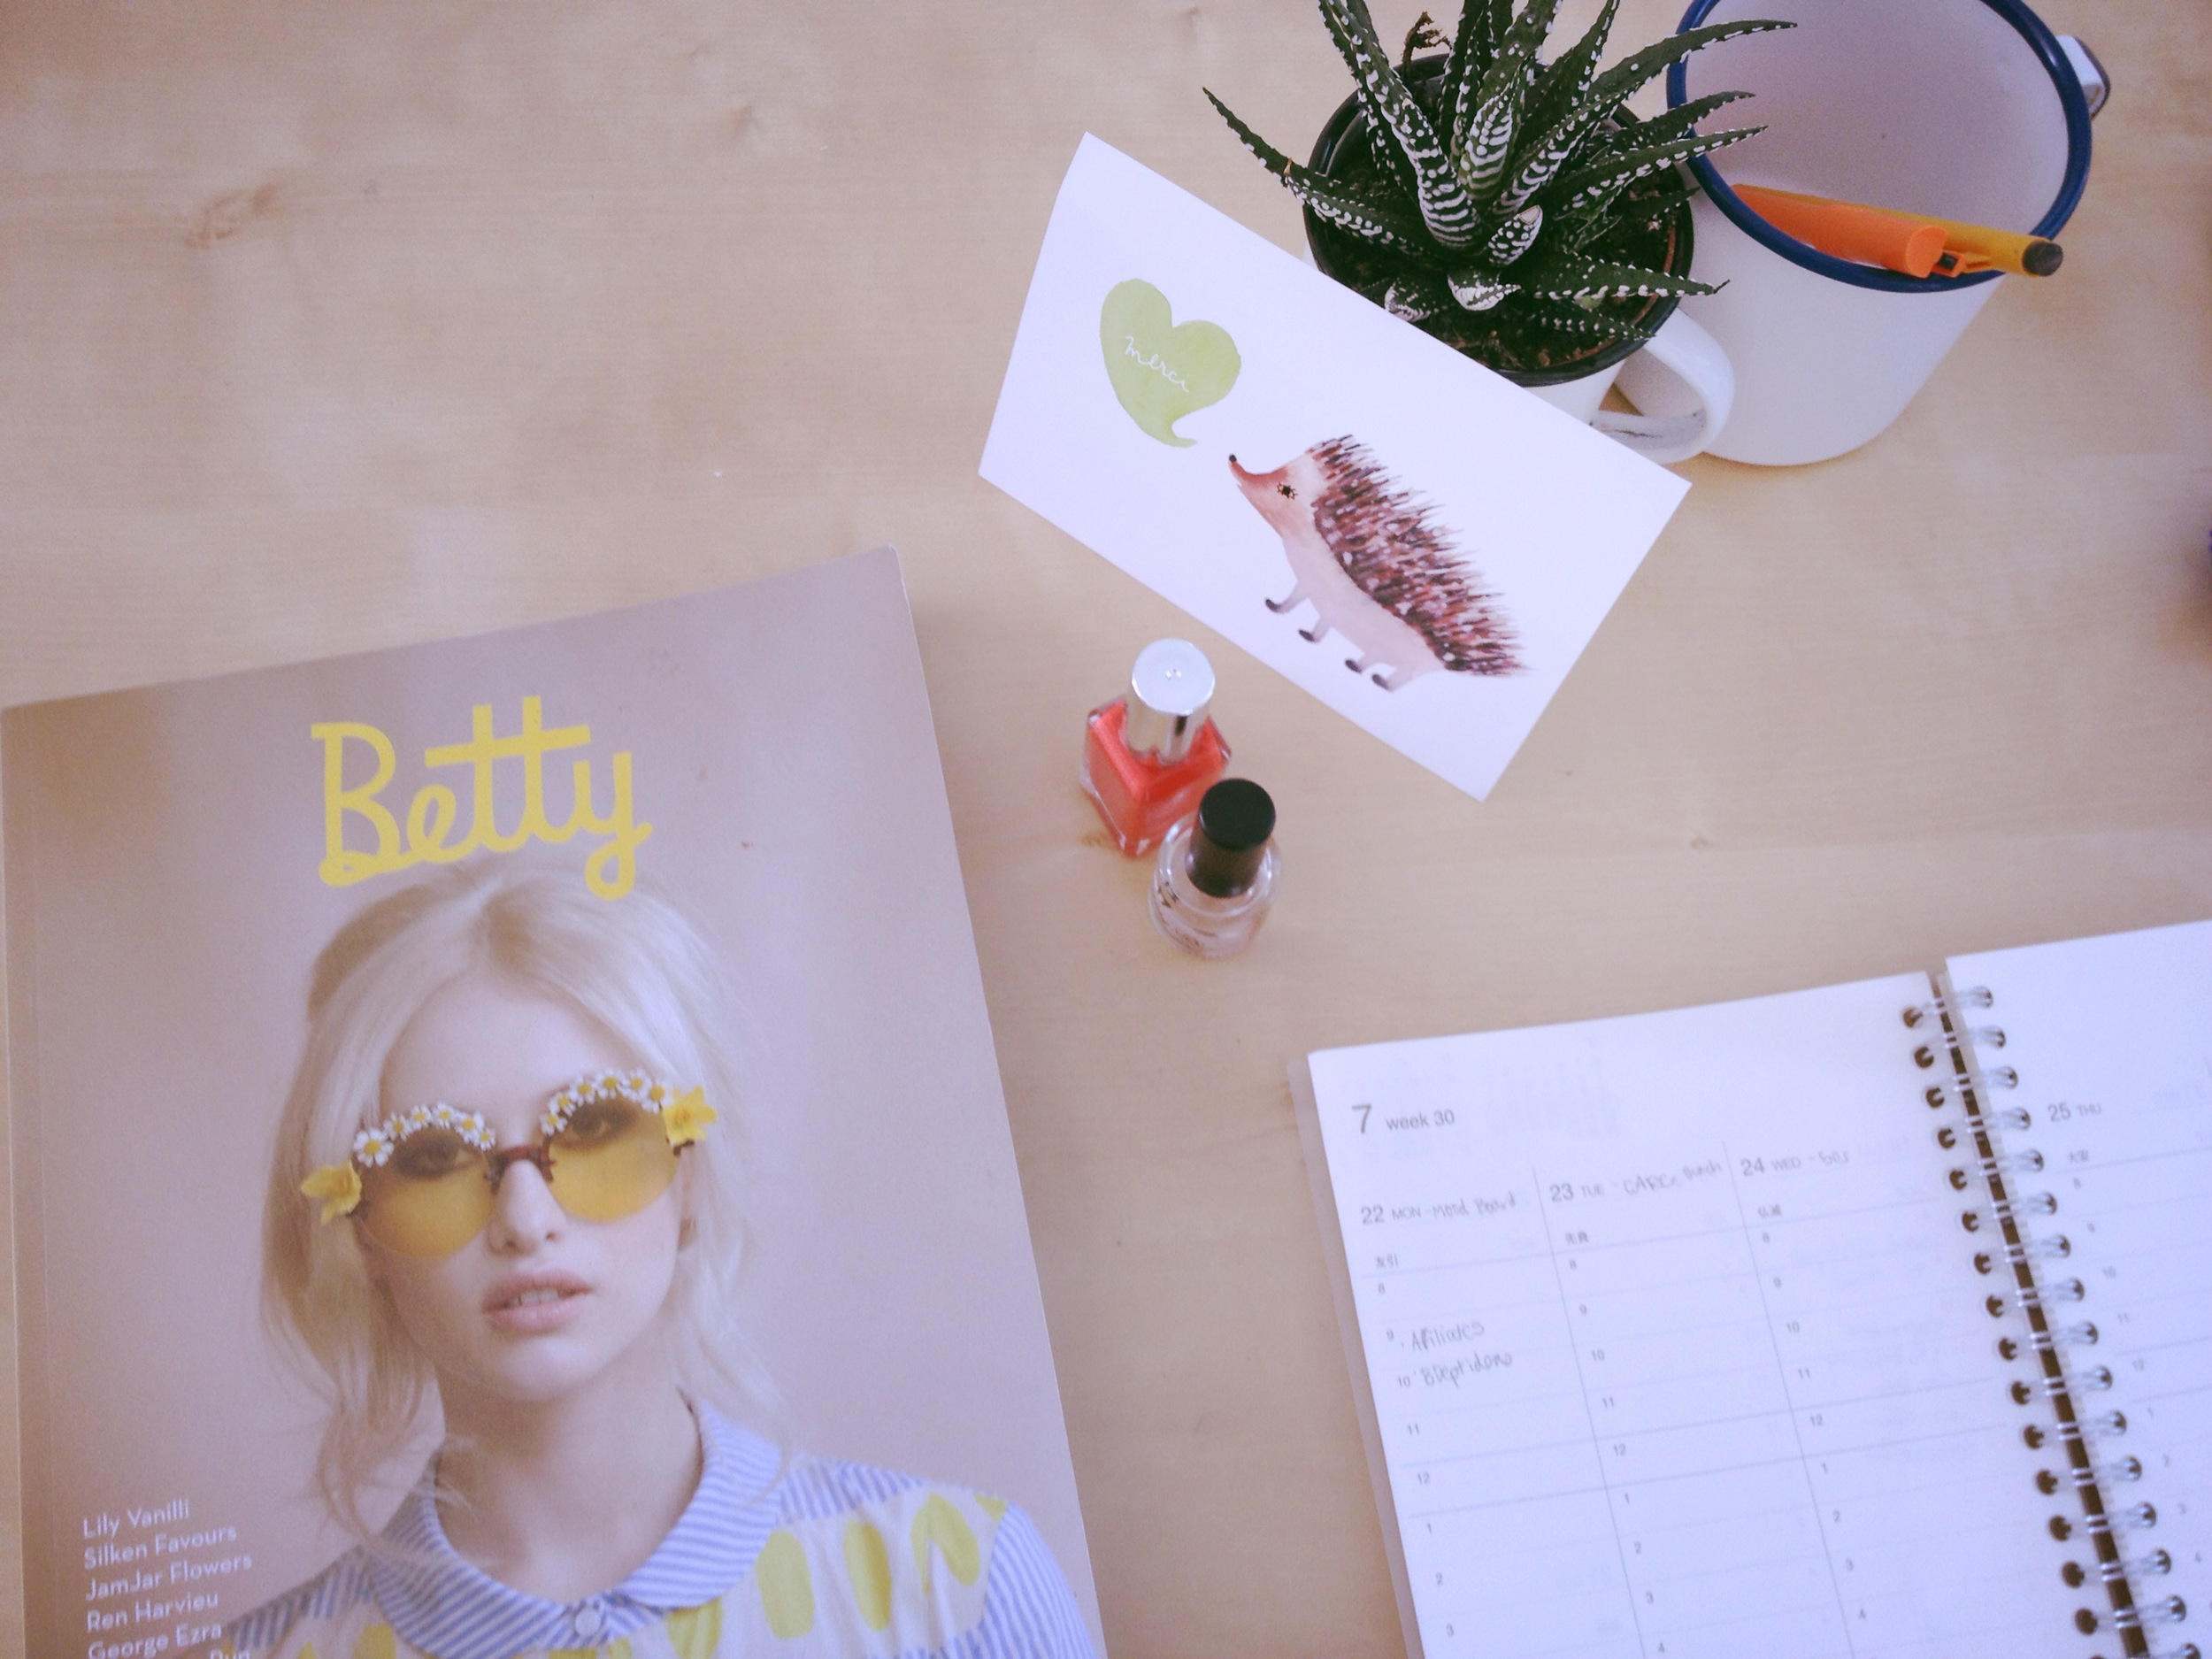 Betty Magazine / Second Floor Flat